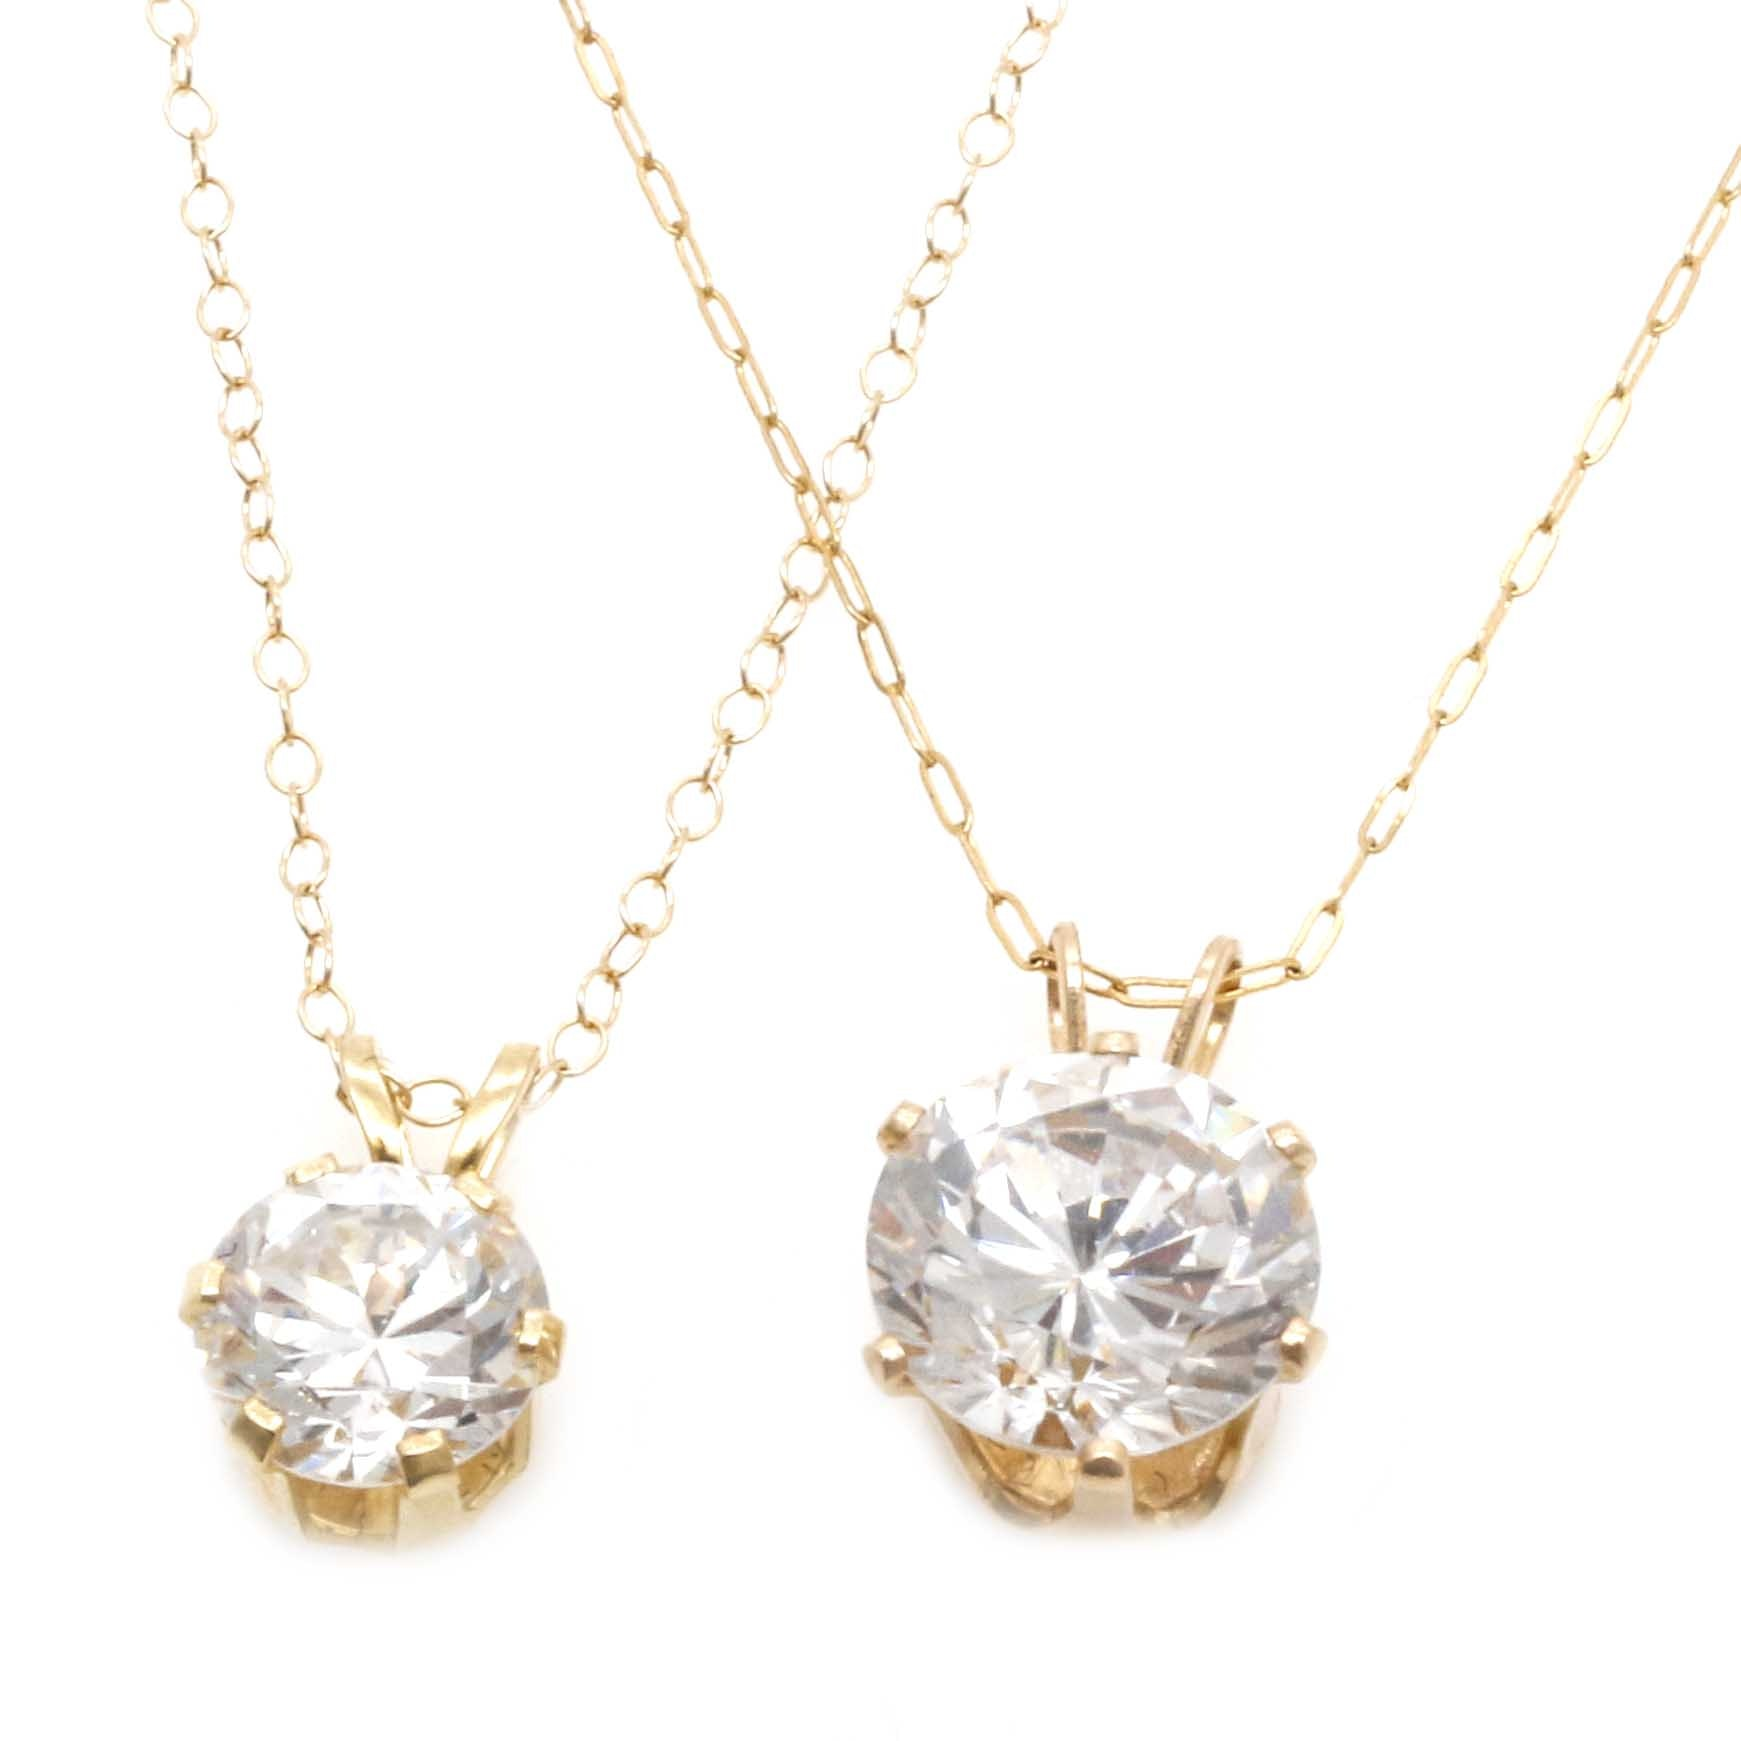 14K Yellow Gold Cubic Zirconia Necklaces